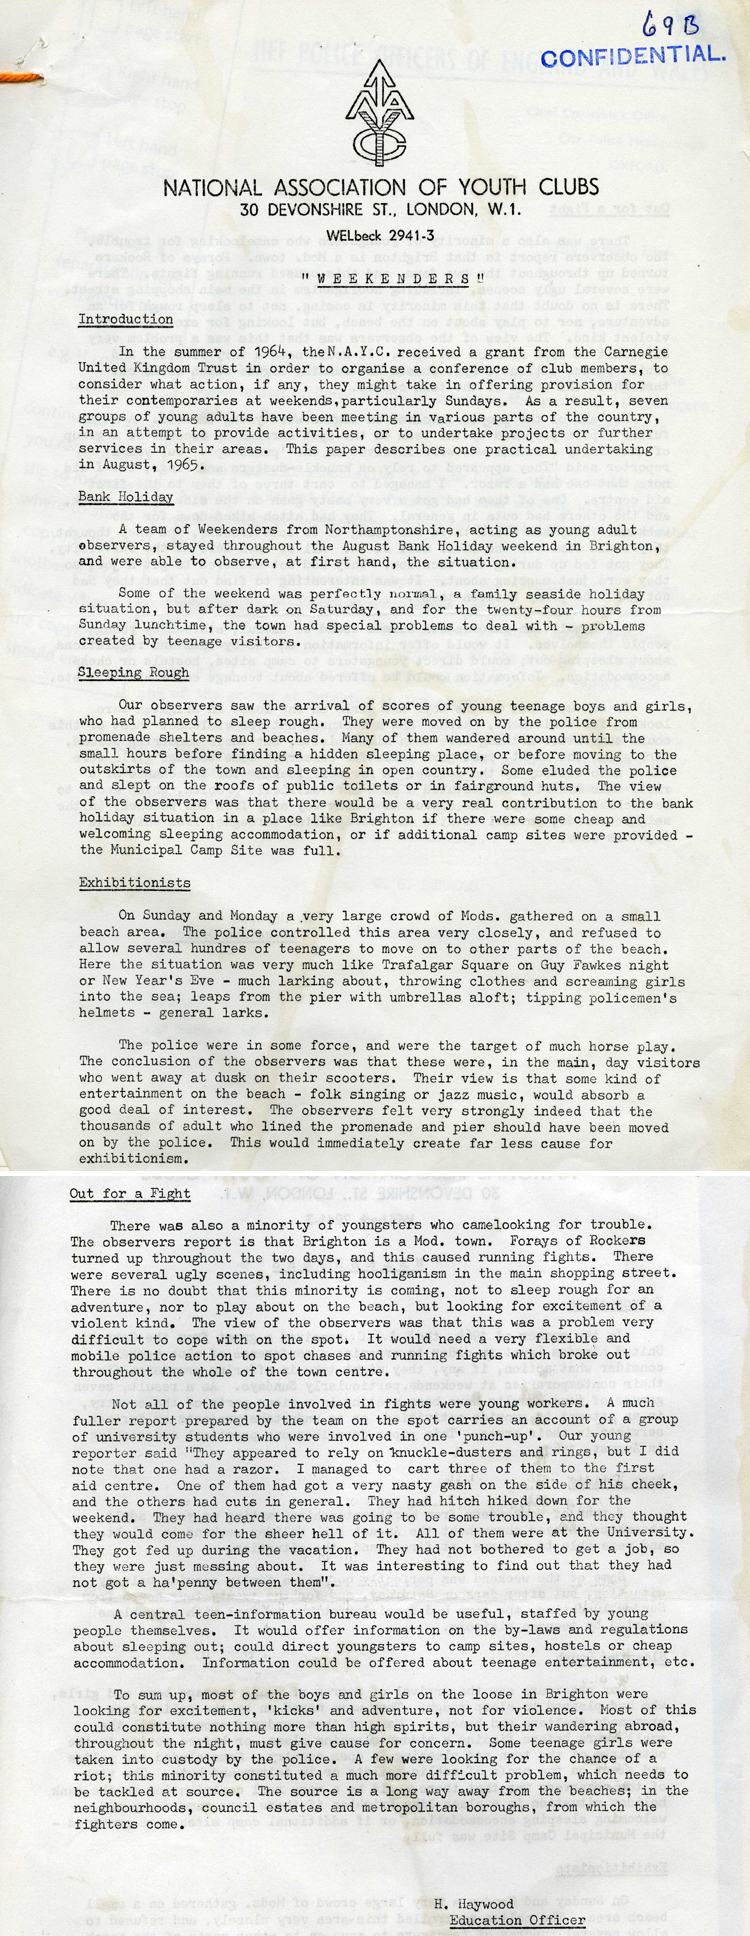 Report from the National Association of Youth clubs on youth behaviour on the August Bank Holiday in Brighton, 1965 (MEPO 2/10477)